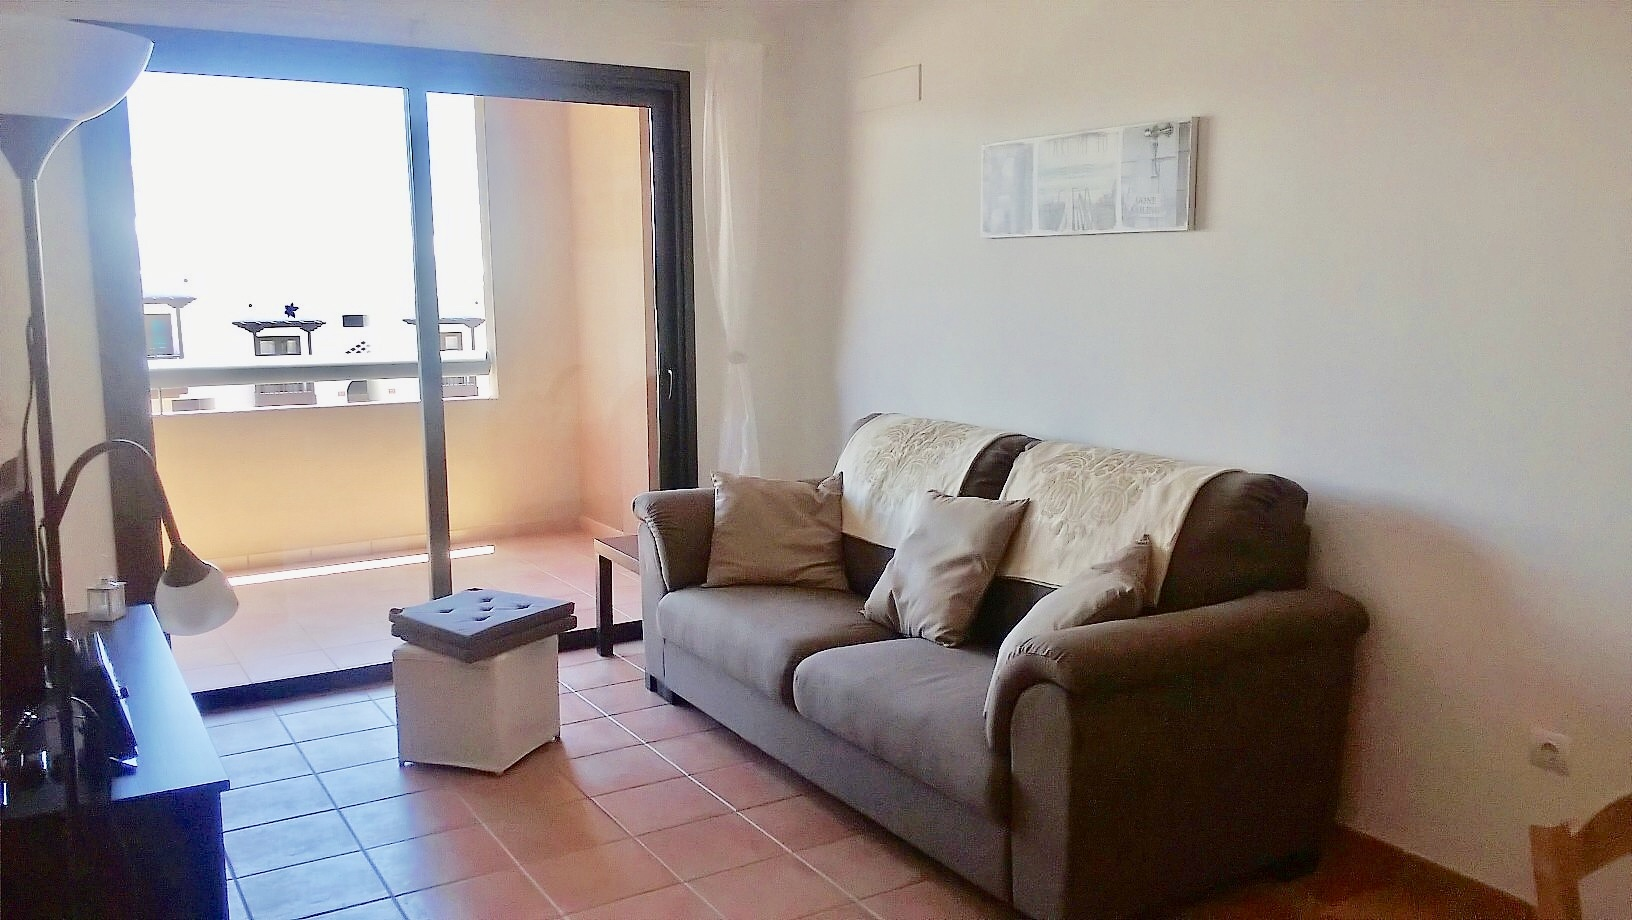 Appartement - Playa Paraiso - Paraiso II (d)